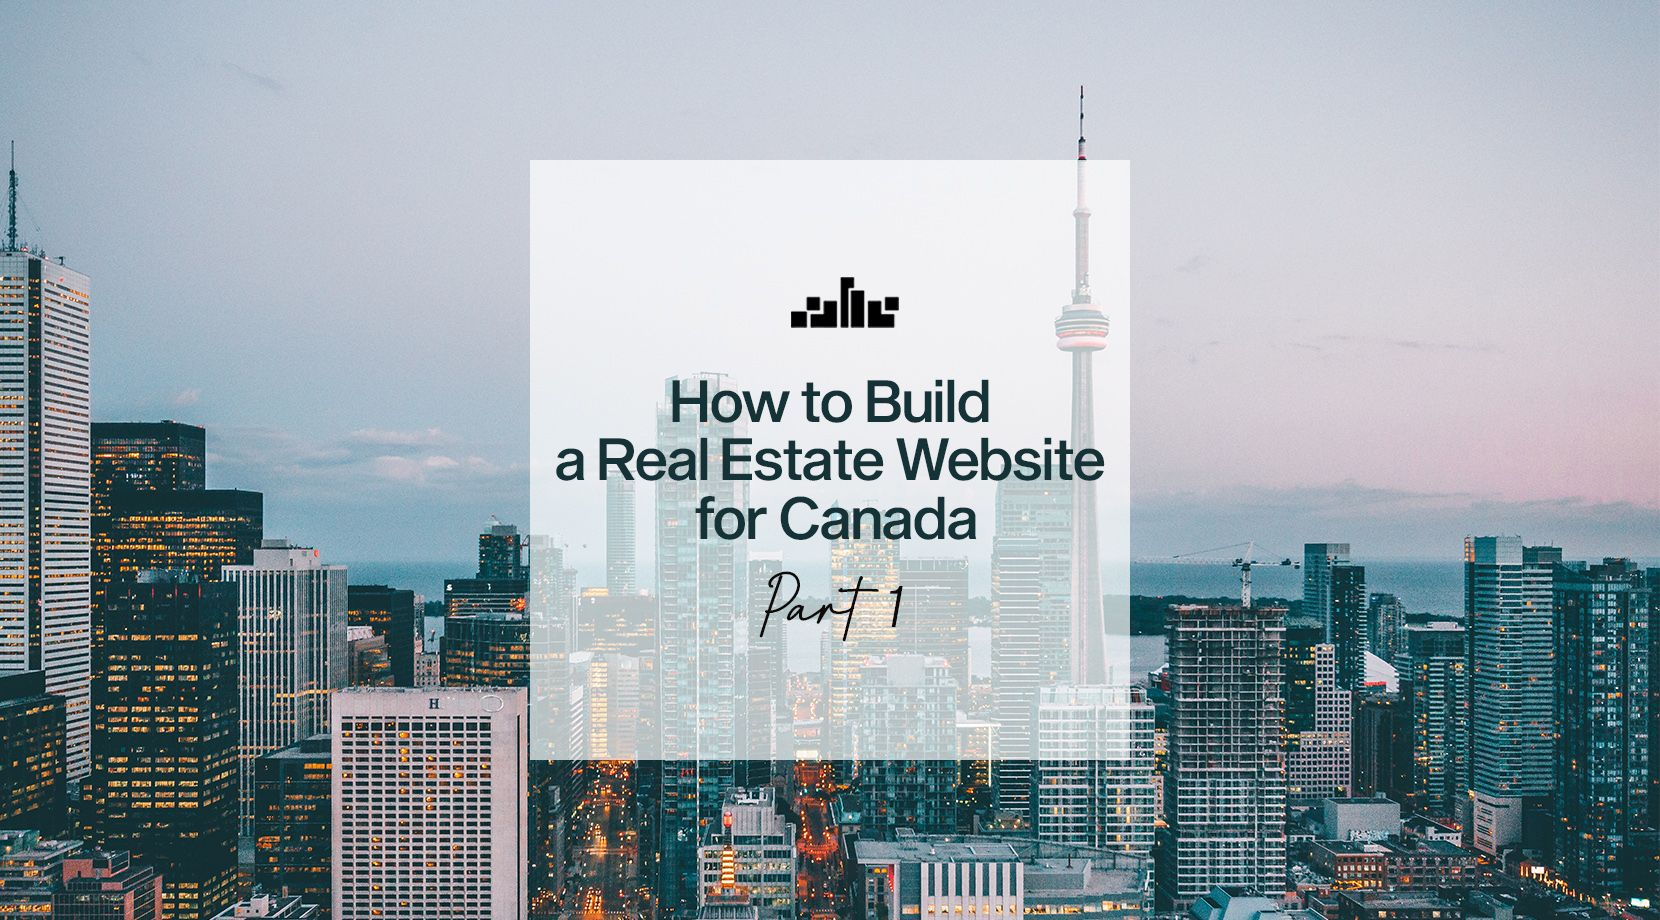 How to Build a Real Estate Website for Canada: Part 1